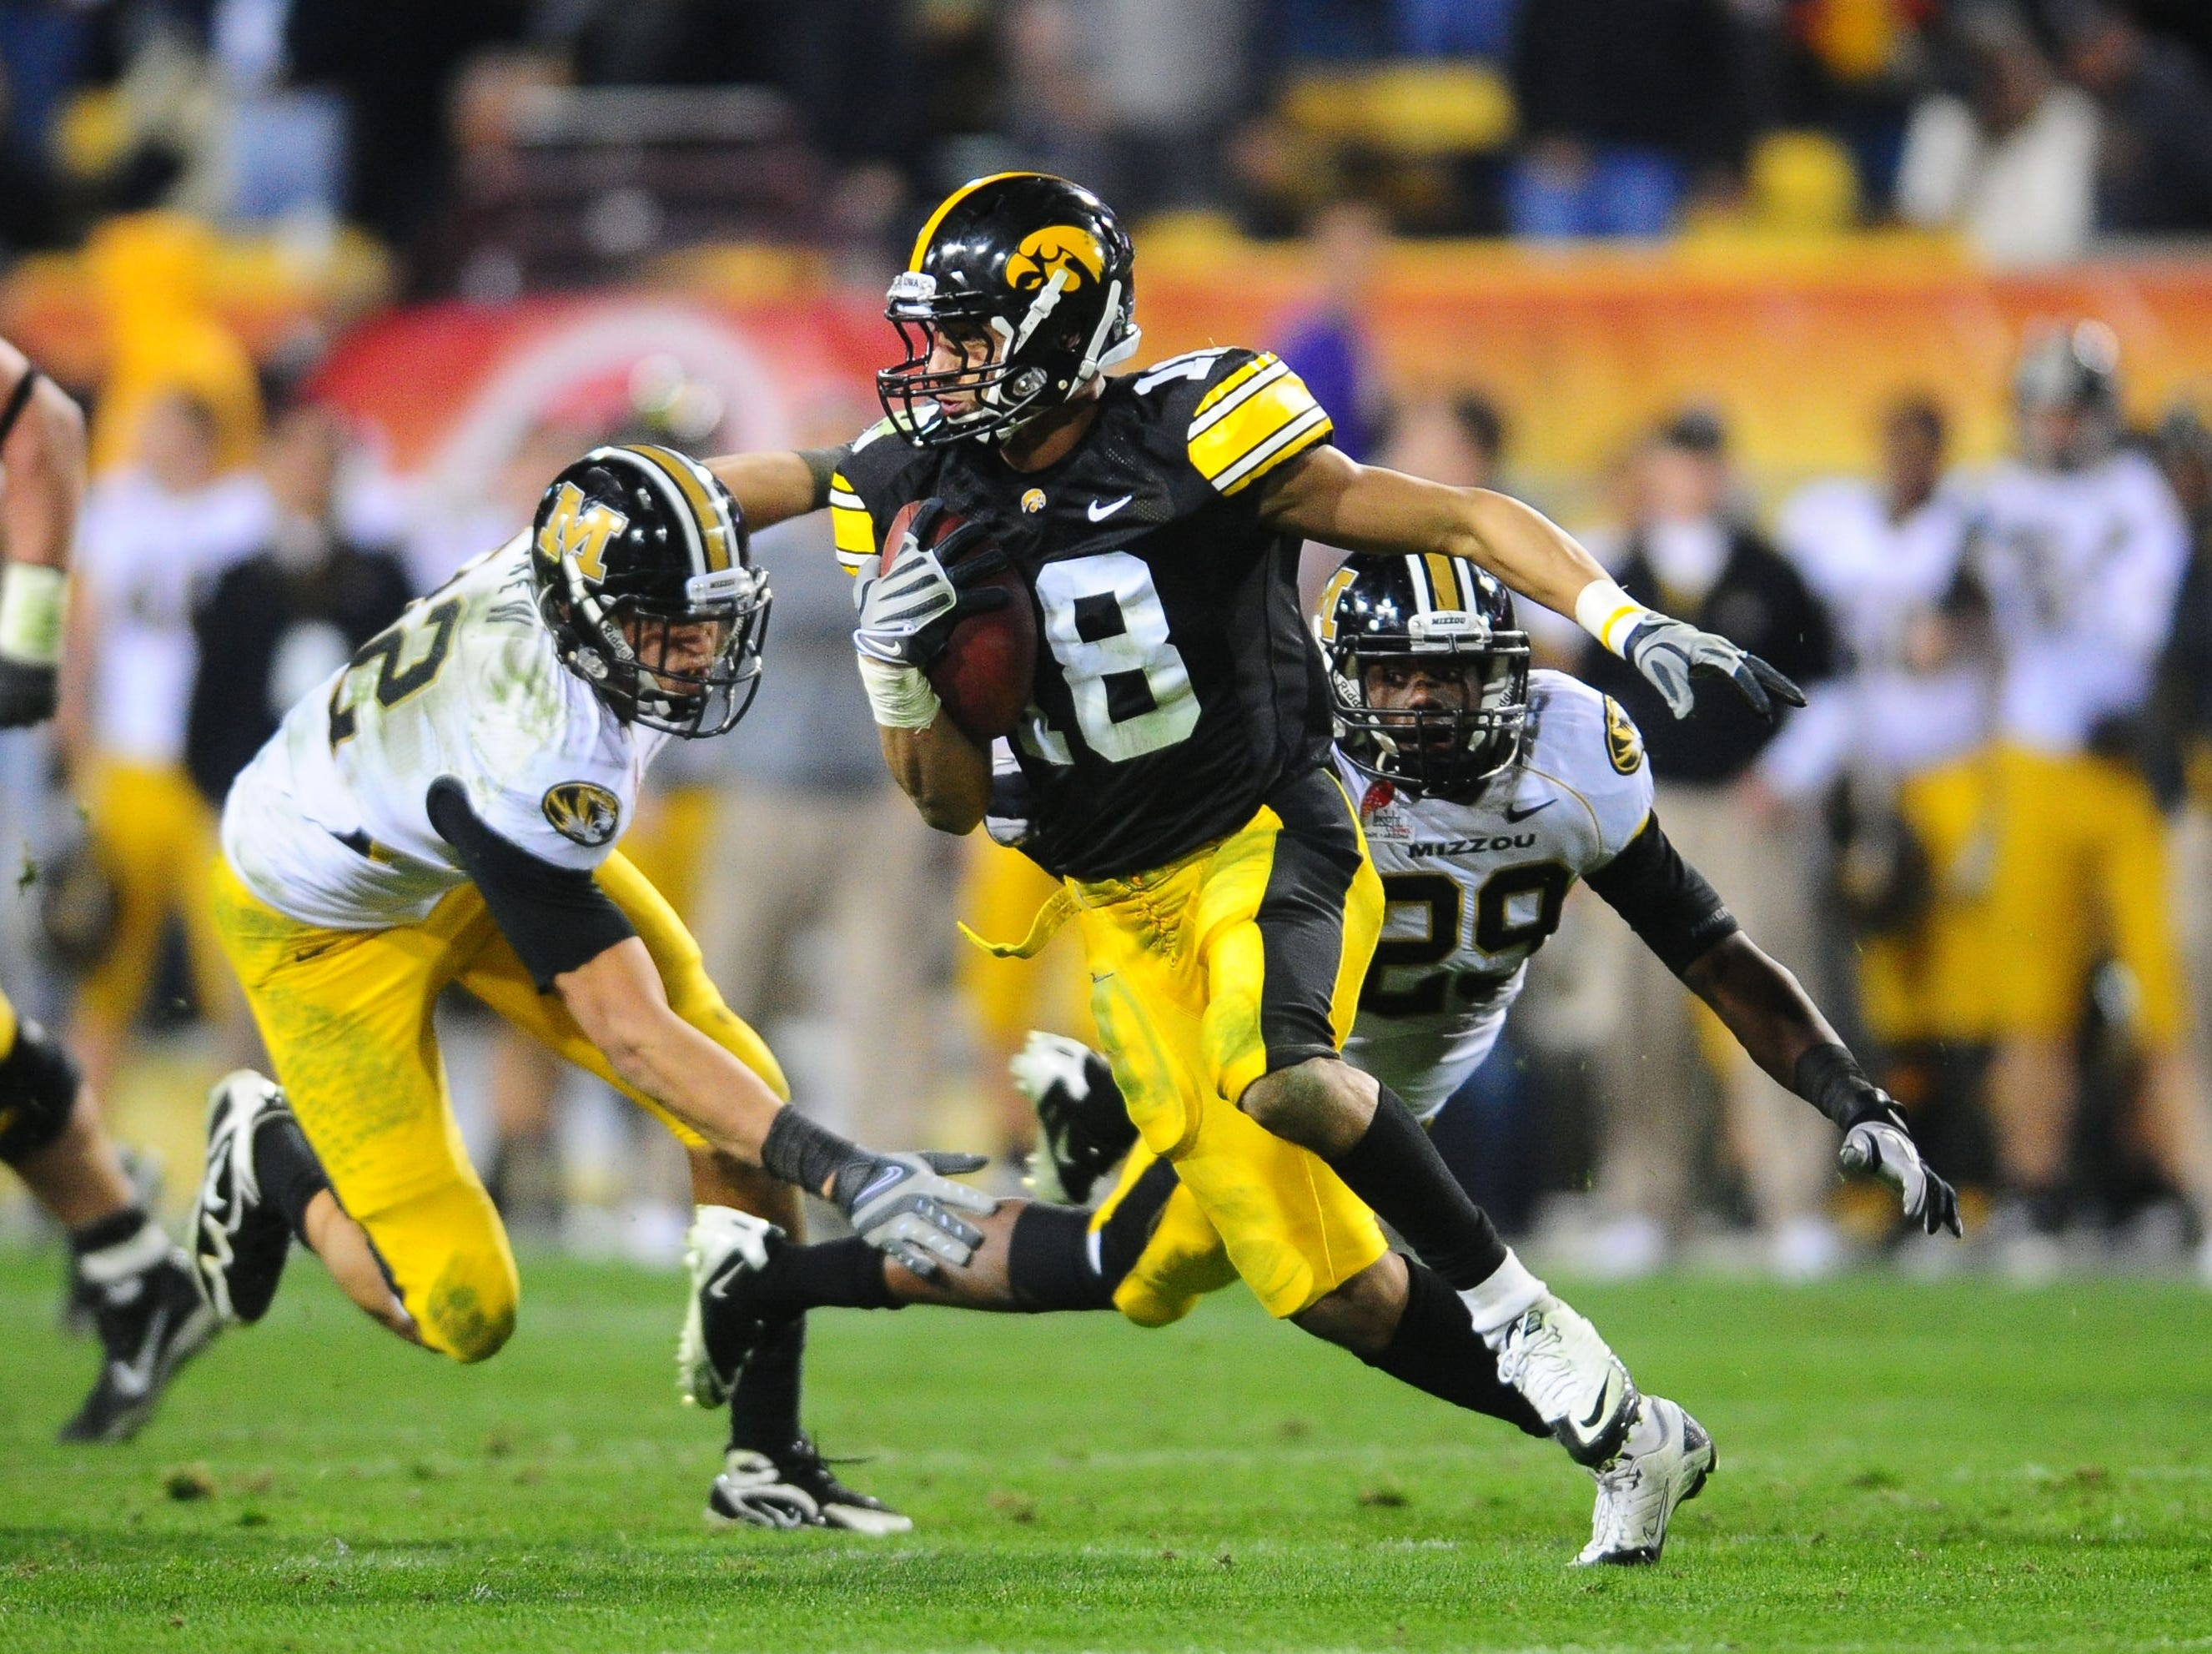 Dec. 28, 2010; Tempe, AZ, USA; Iowa Hawkeyes defensive back (18) Micah Hyde returns an interception for a touchdown in the fourth quarter against the Missouri Tigers in the 2010 Insight Bowl at Sun Devil Stadium. Iowa defeated Missouri 27-24. Mandatory Credit: Mark J. Rebilas-USA TODAY Sports